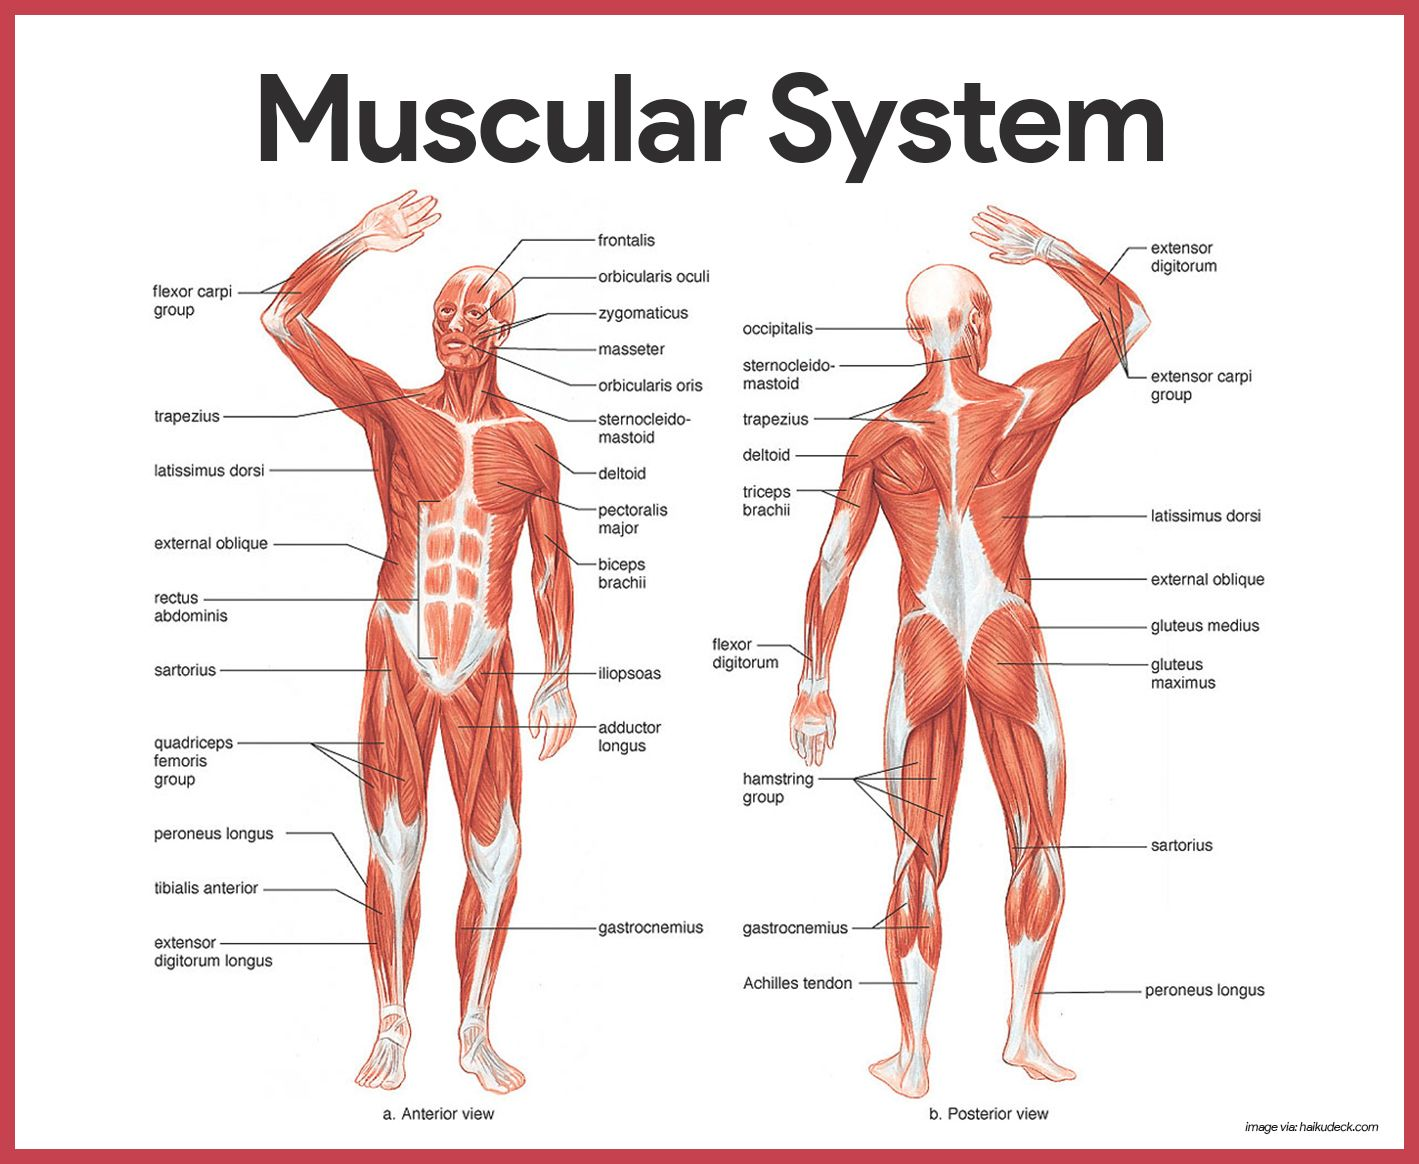 Musculoskeletal system: functions and structure. Development of the human musculoskeletal system